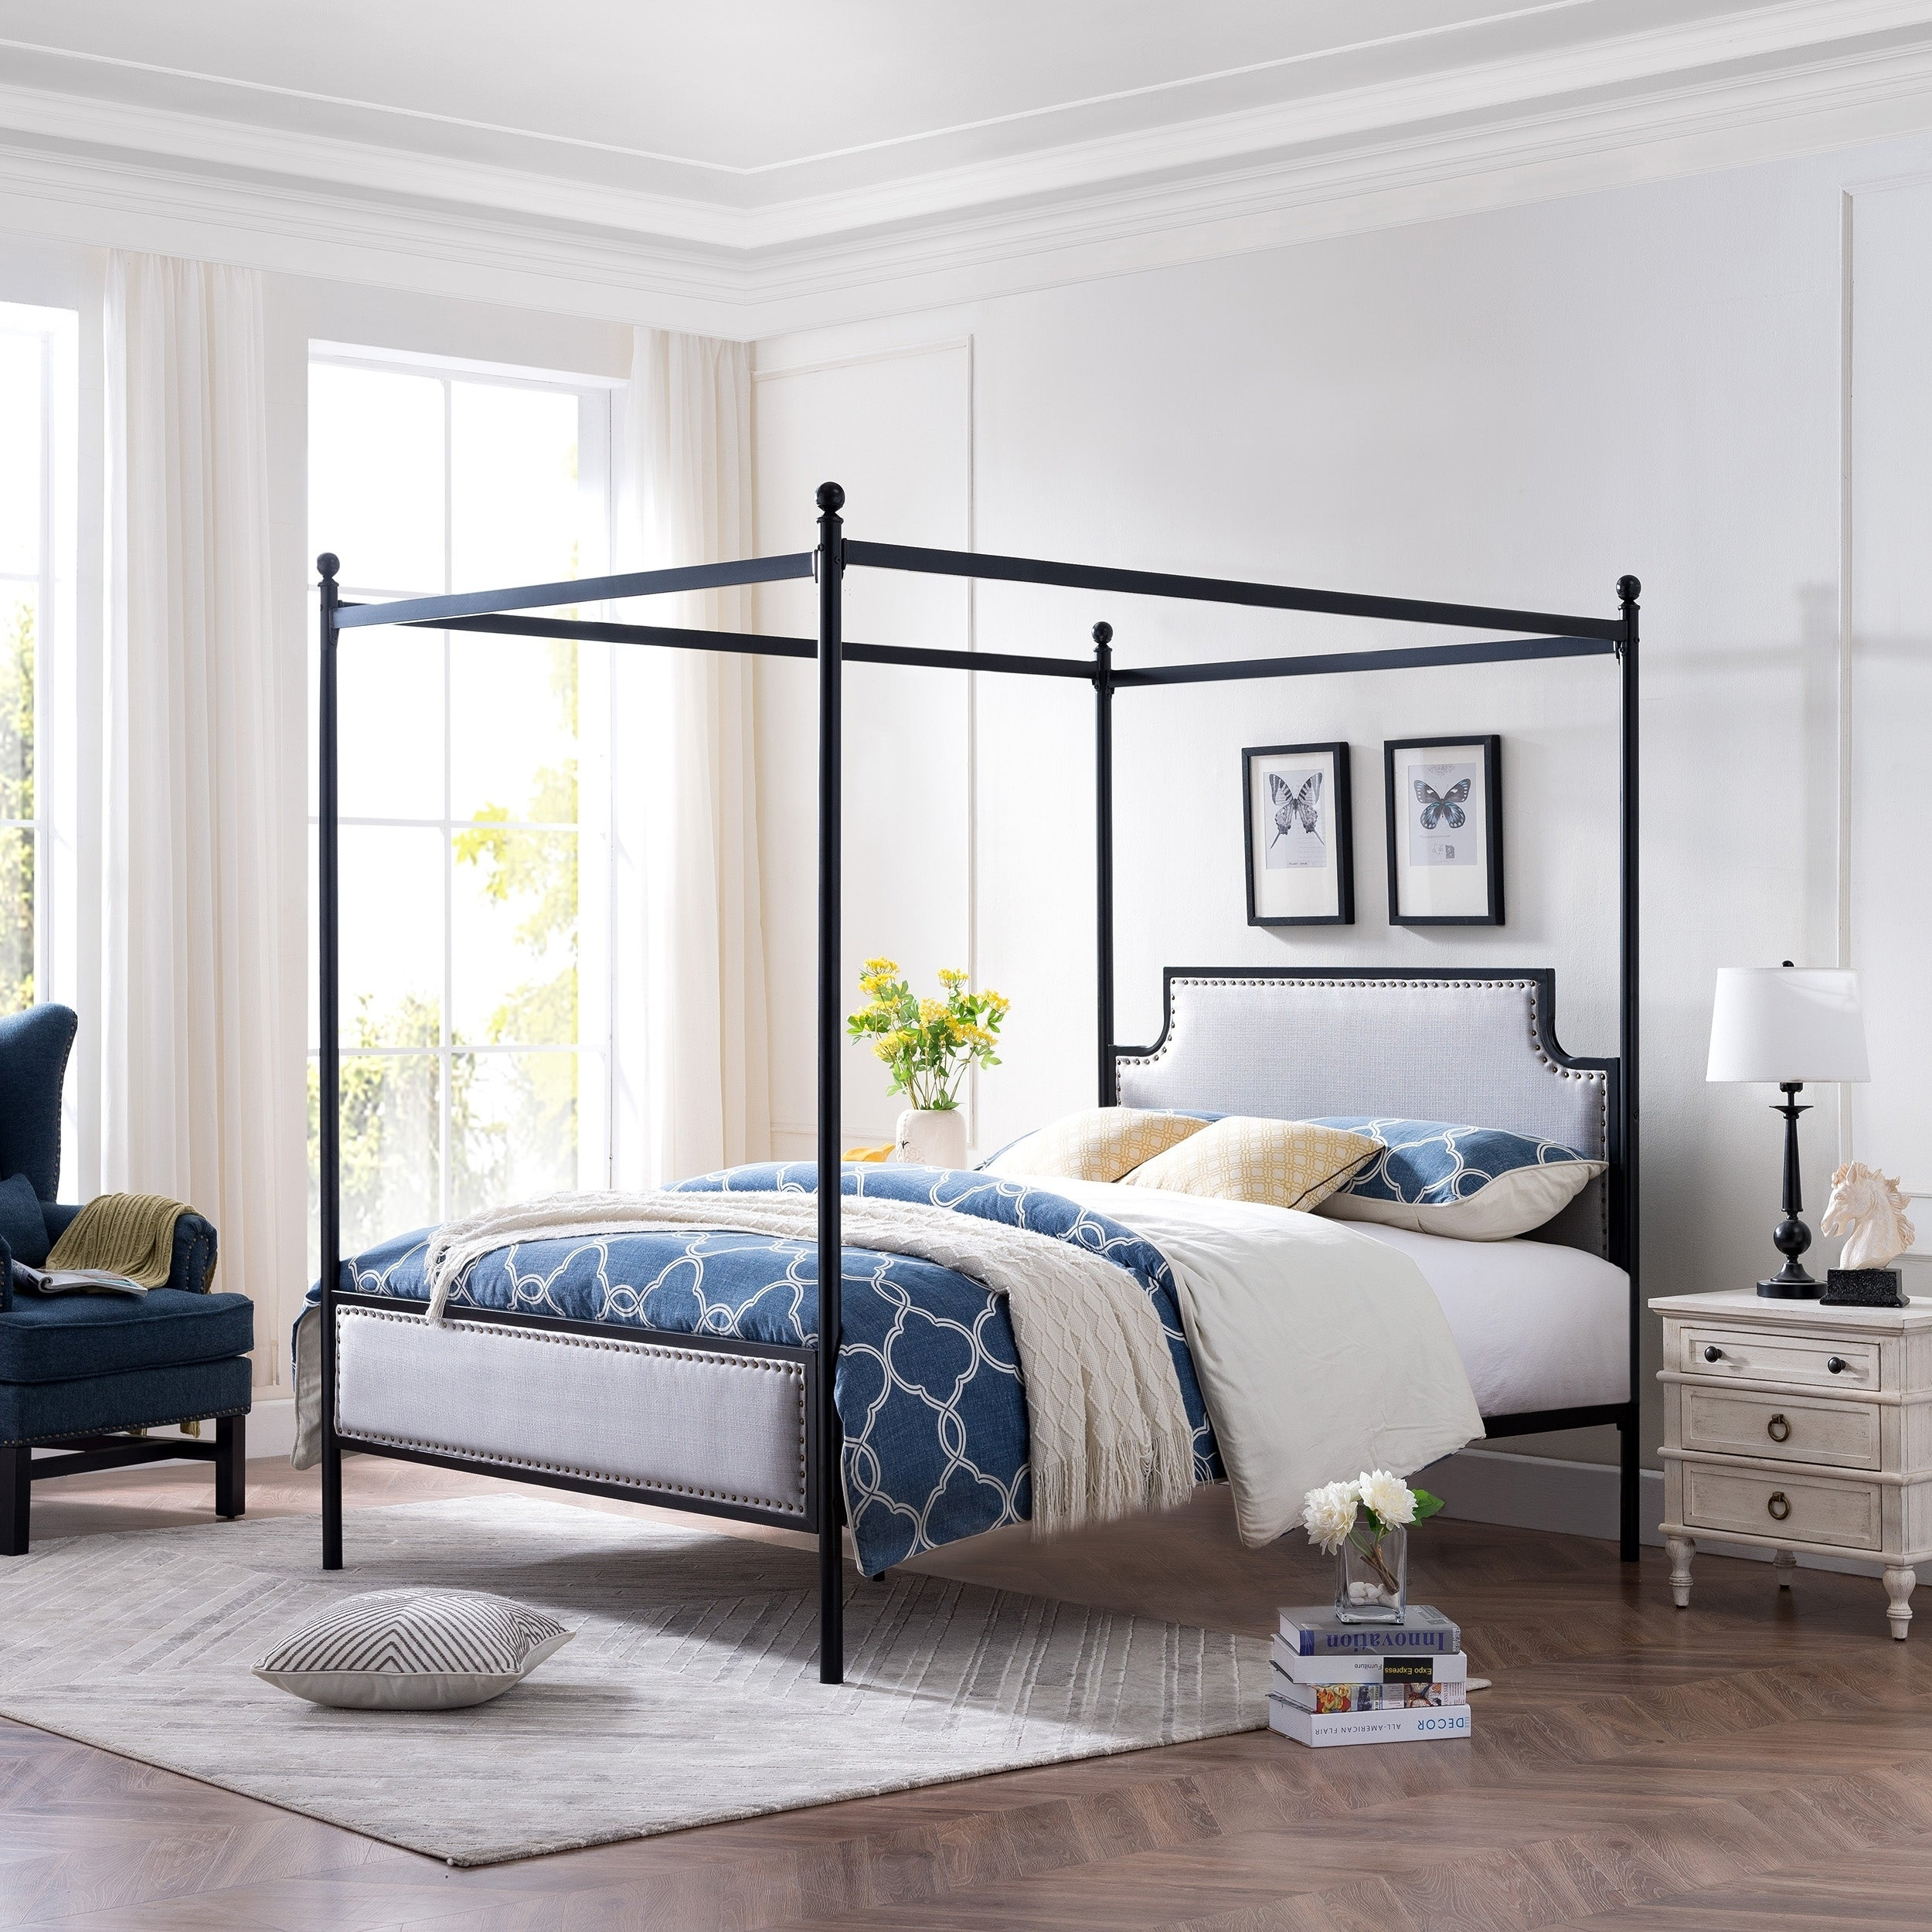 Beechmont Queen Size Canopy Bed Frame With Upholstered Studded Headboard By Christopher Knight Home On Sale Overstock 27414185